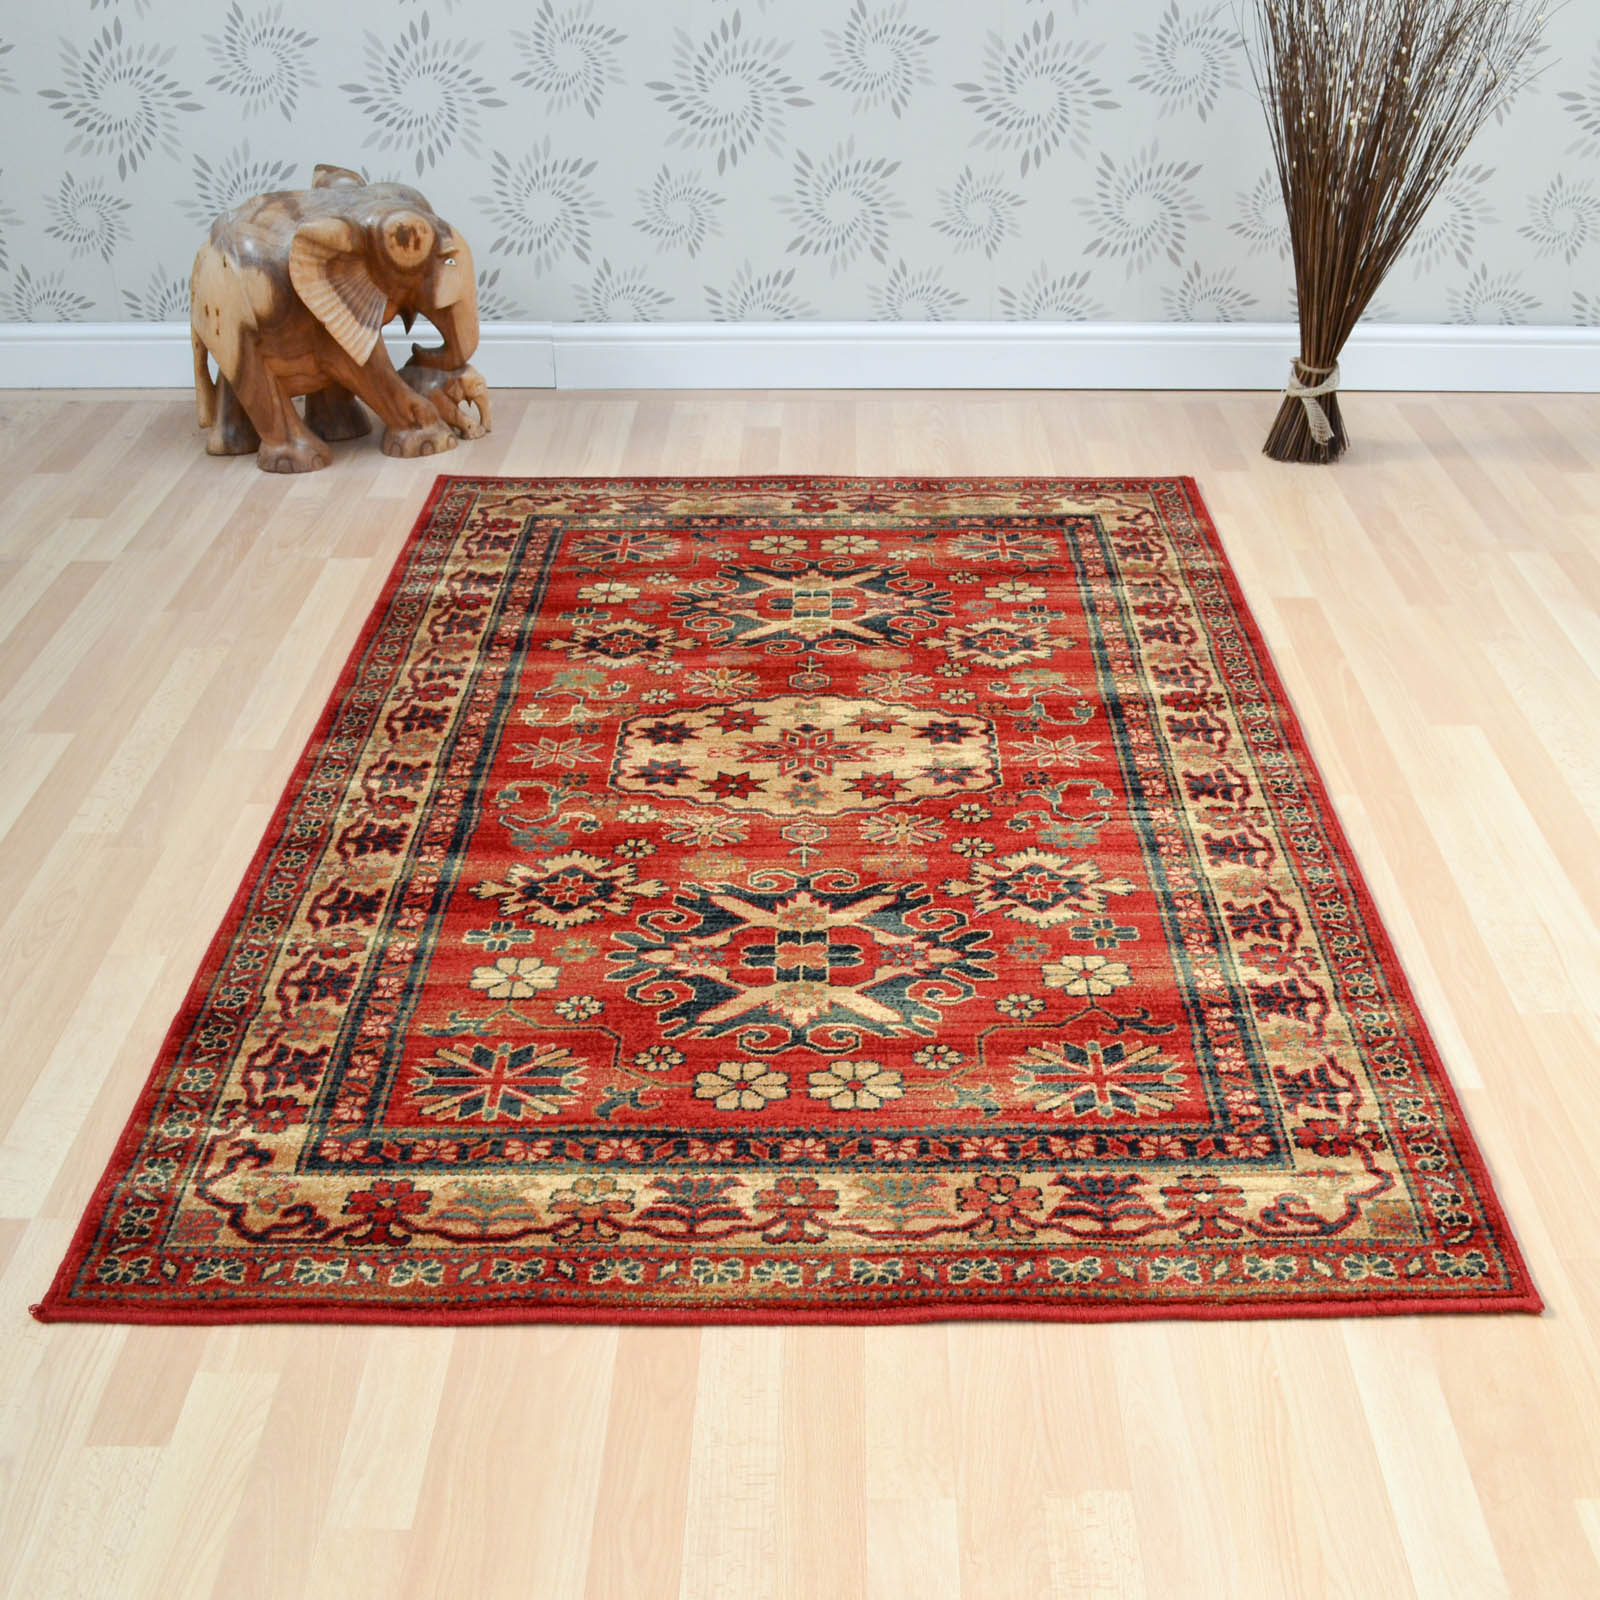 Woburn Shirvan Rugs in Terracotta